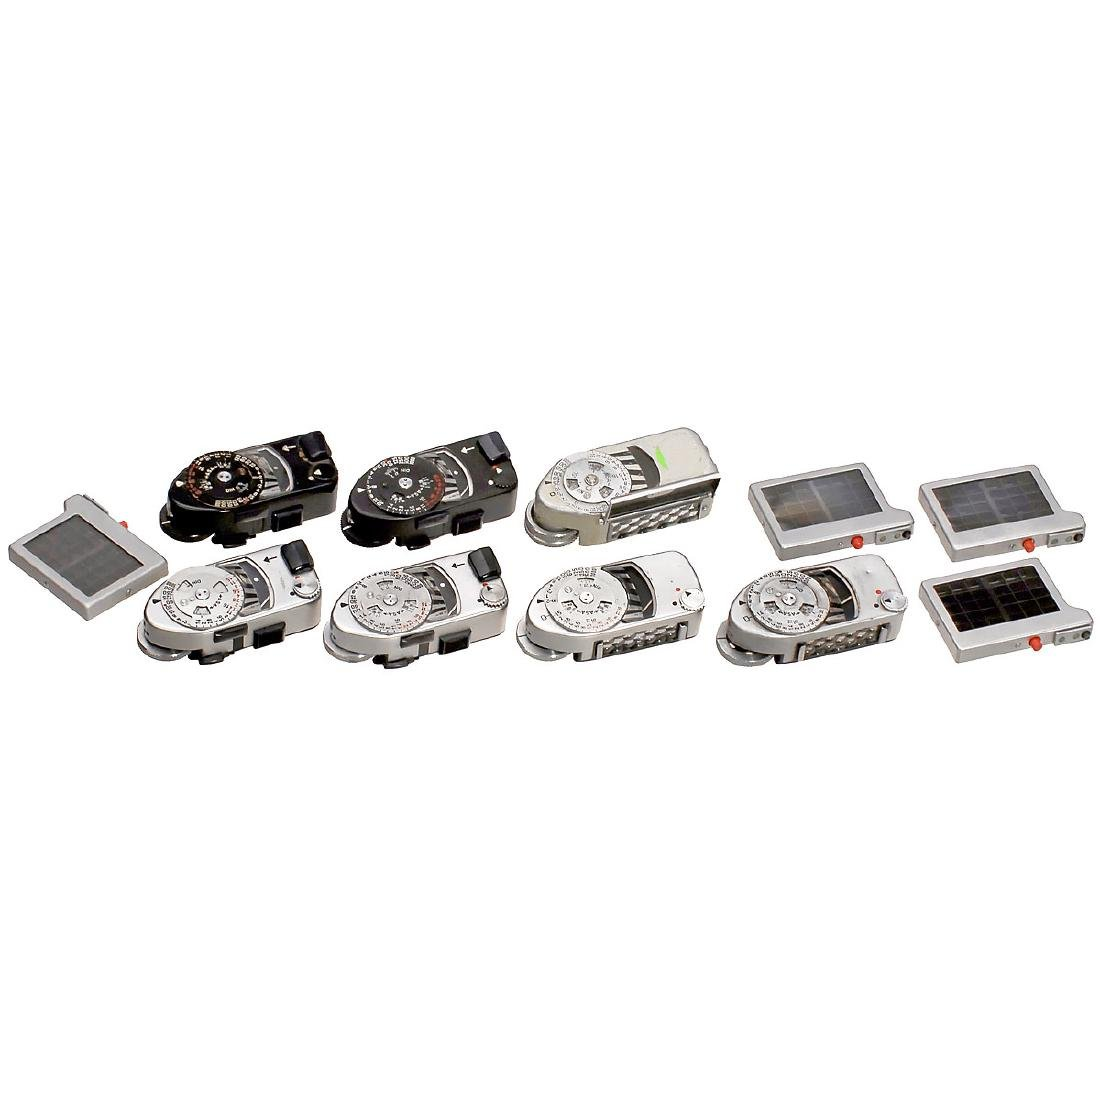 7 Leica-Meters and Accessories